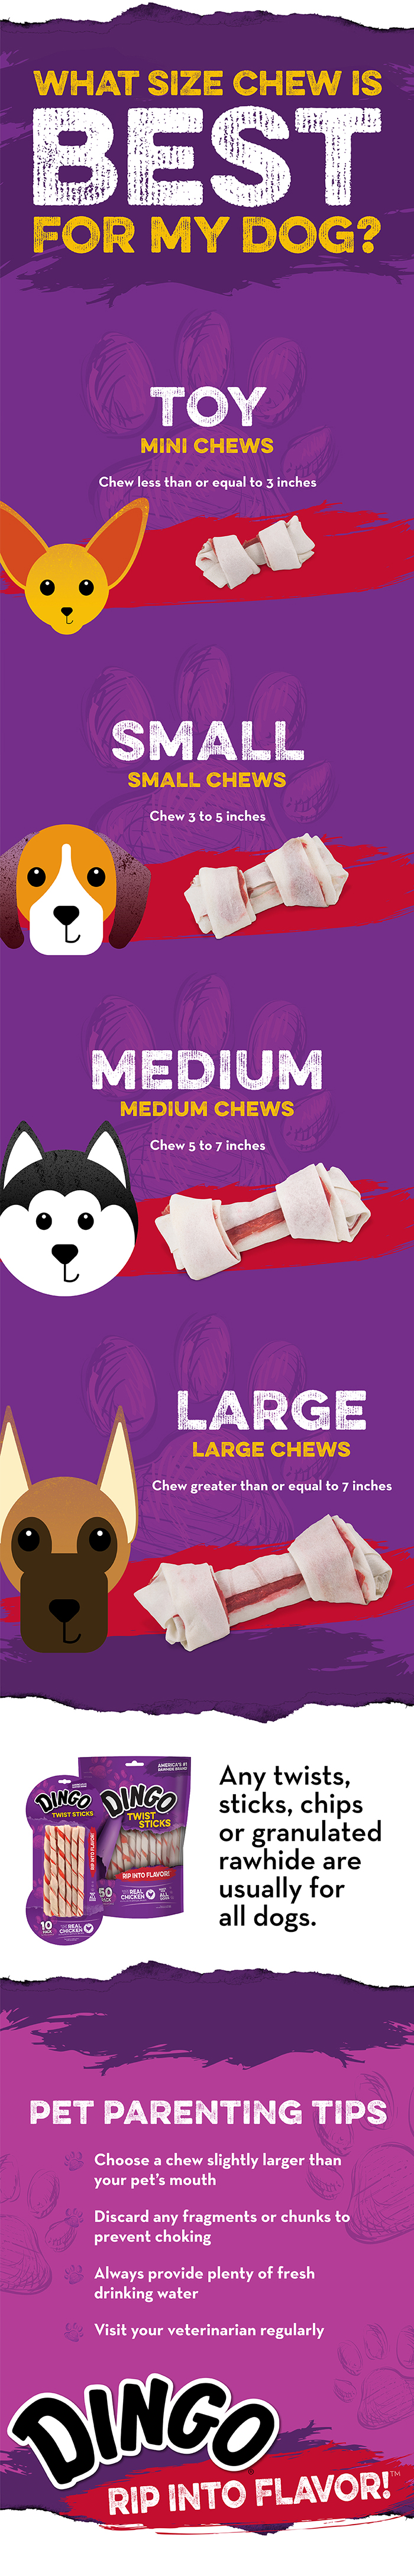 Rawhide Chew Size Infographic